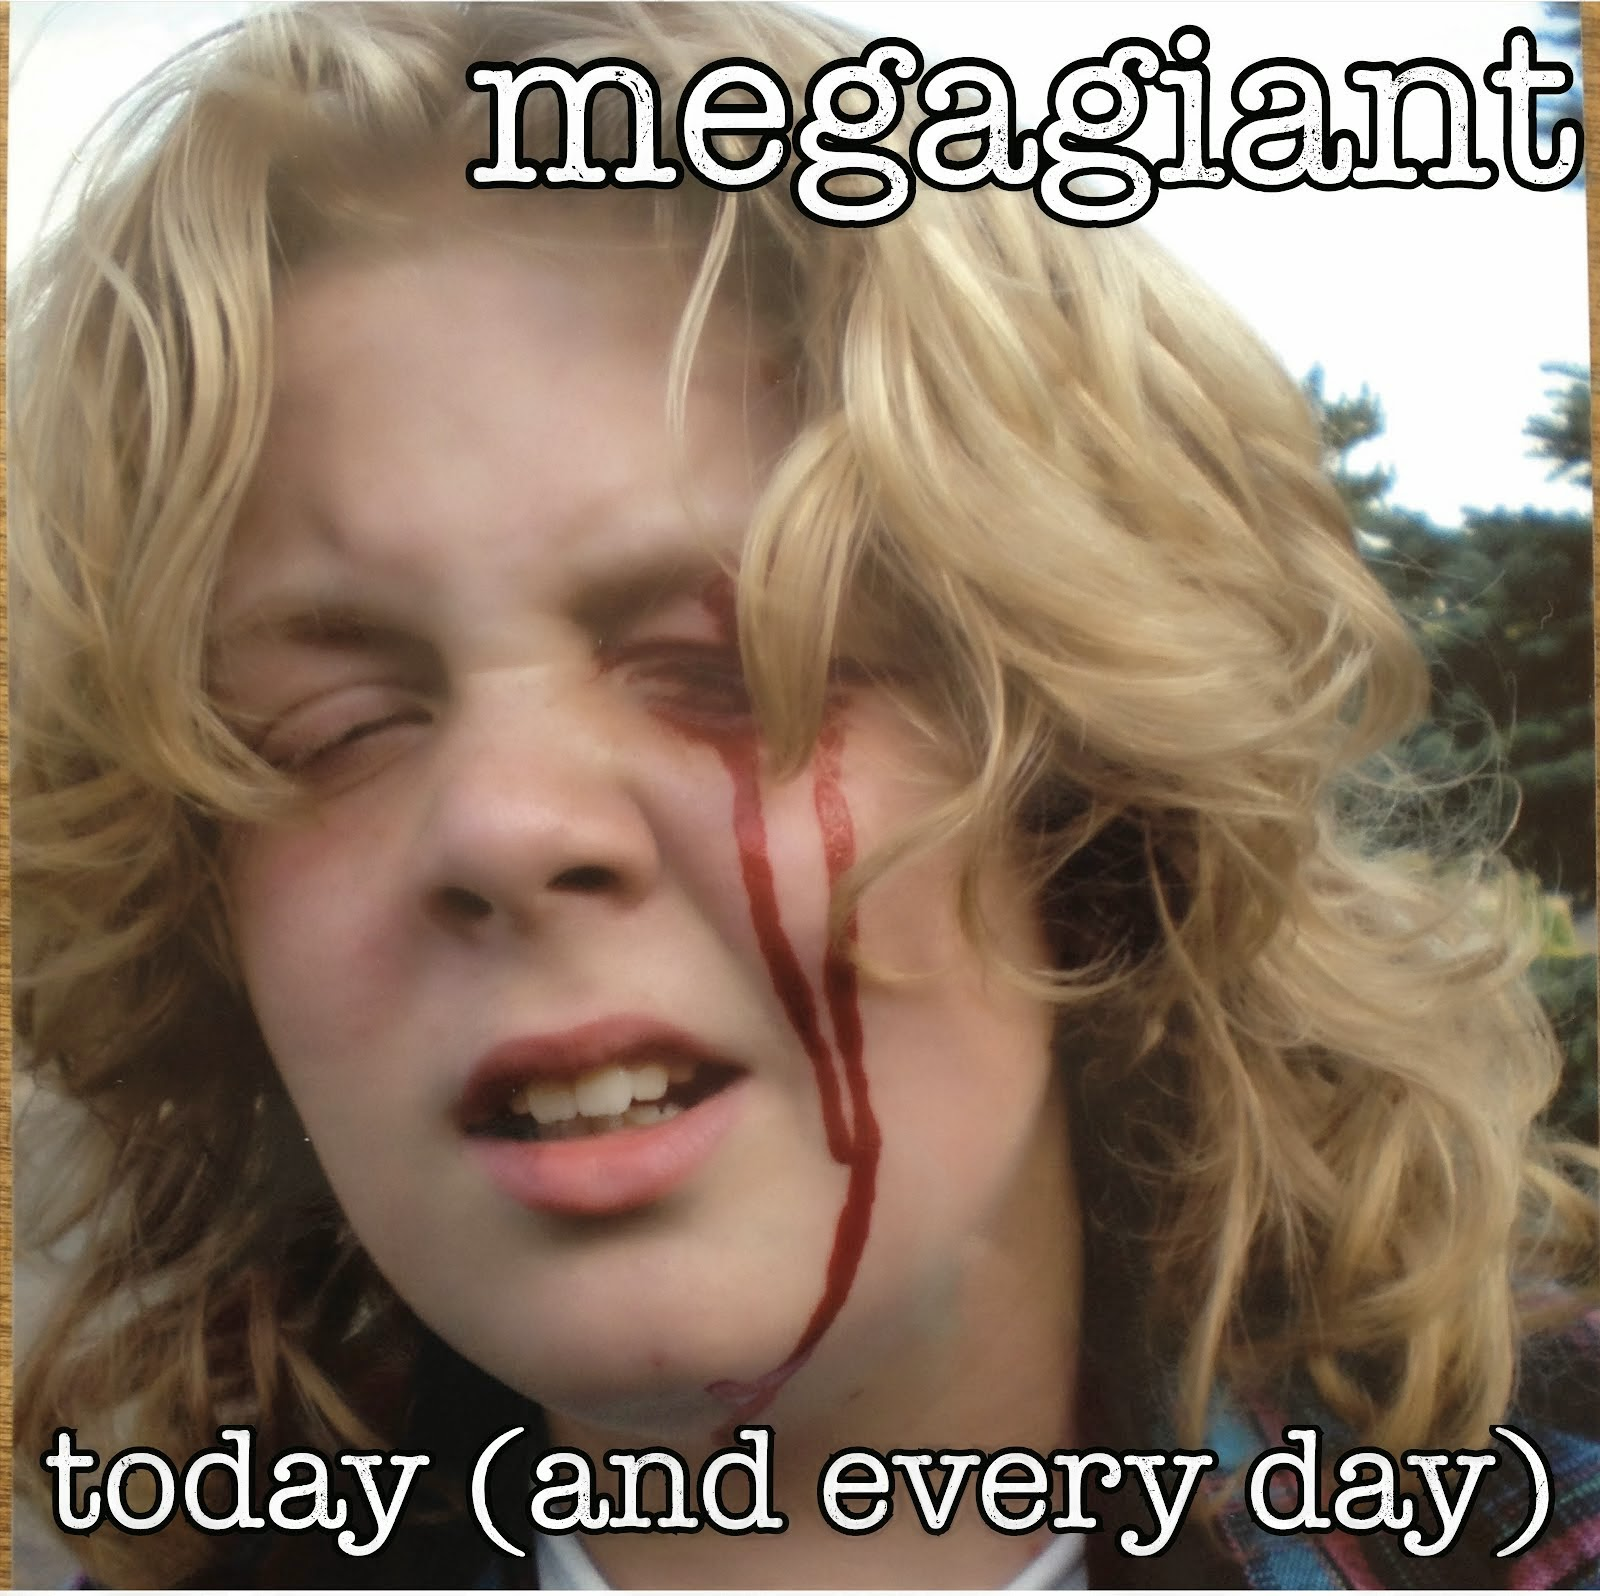 megagiant today (and every day)